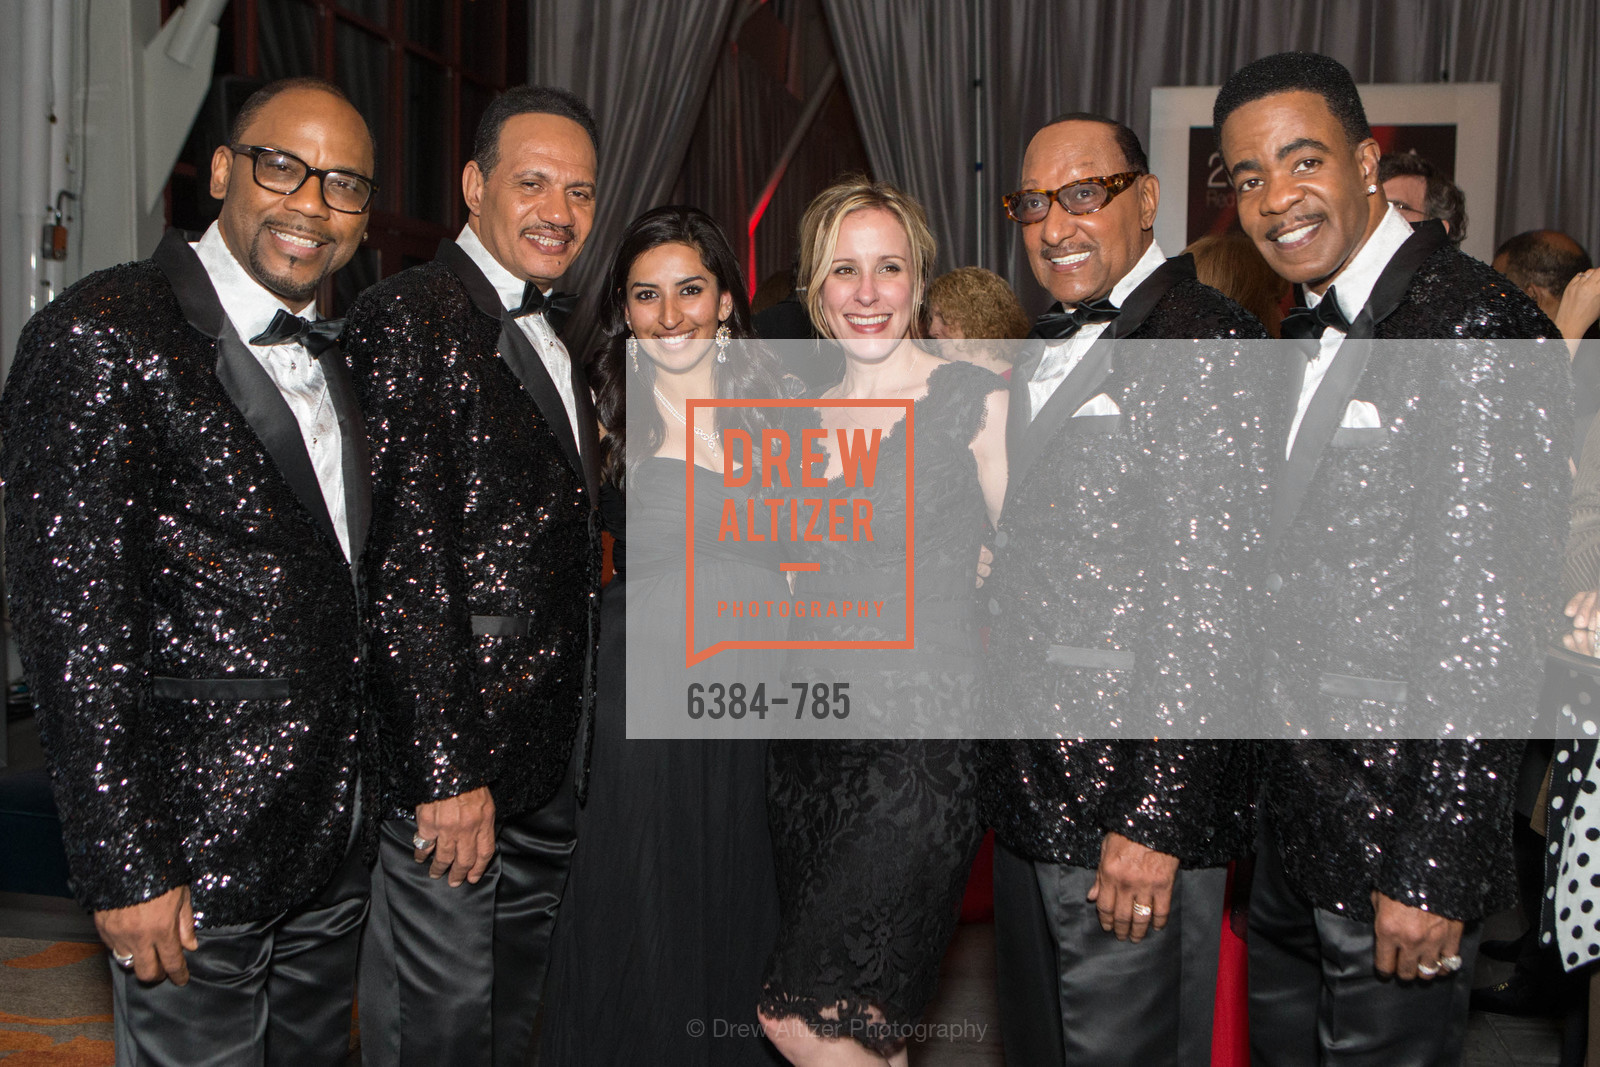 Lawrence Payton, Ronnie McNair, Duke Fakir, Spike Bonhart, 2015 RED CROSS Gala, US, April 12th, 2015,Drew Altizer, Drew Altizer Photography, full-service agency, private events, San Francisco photographer, photographer california